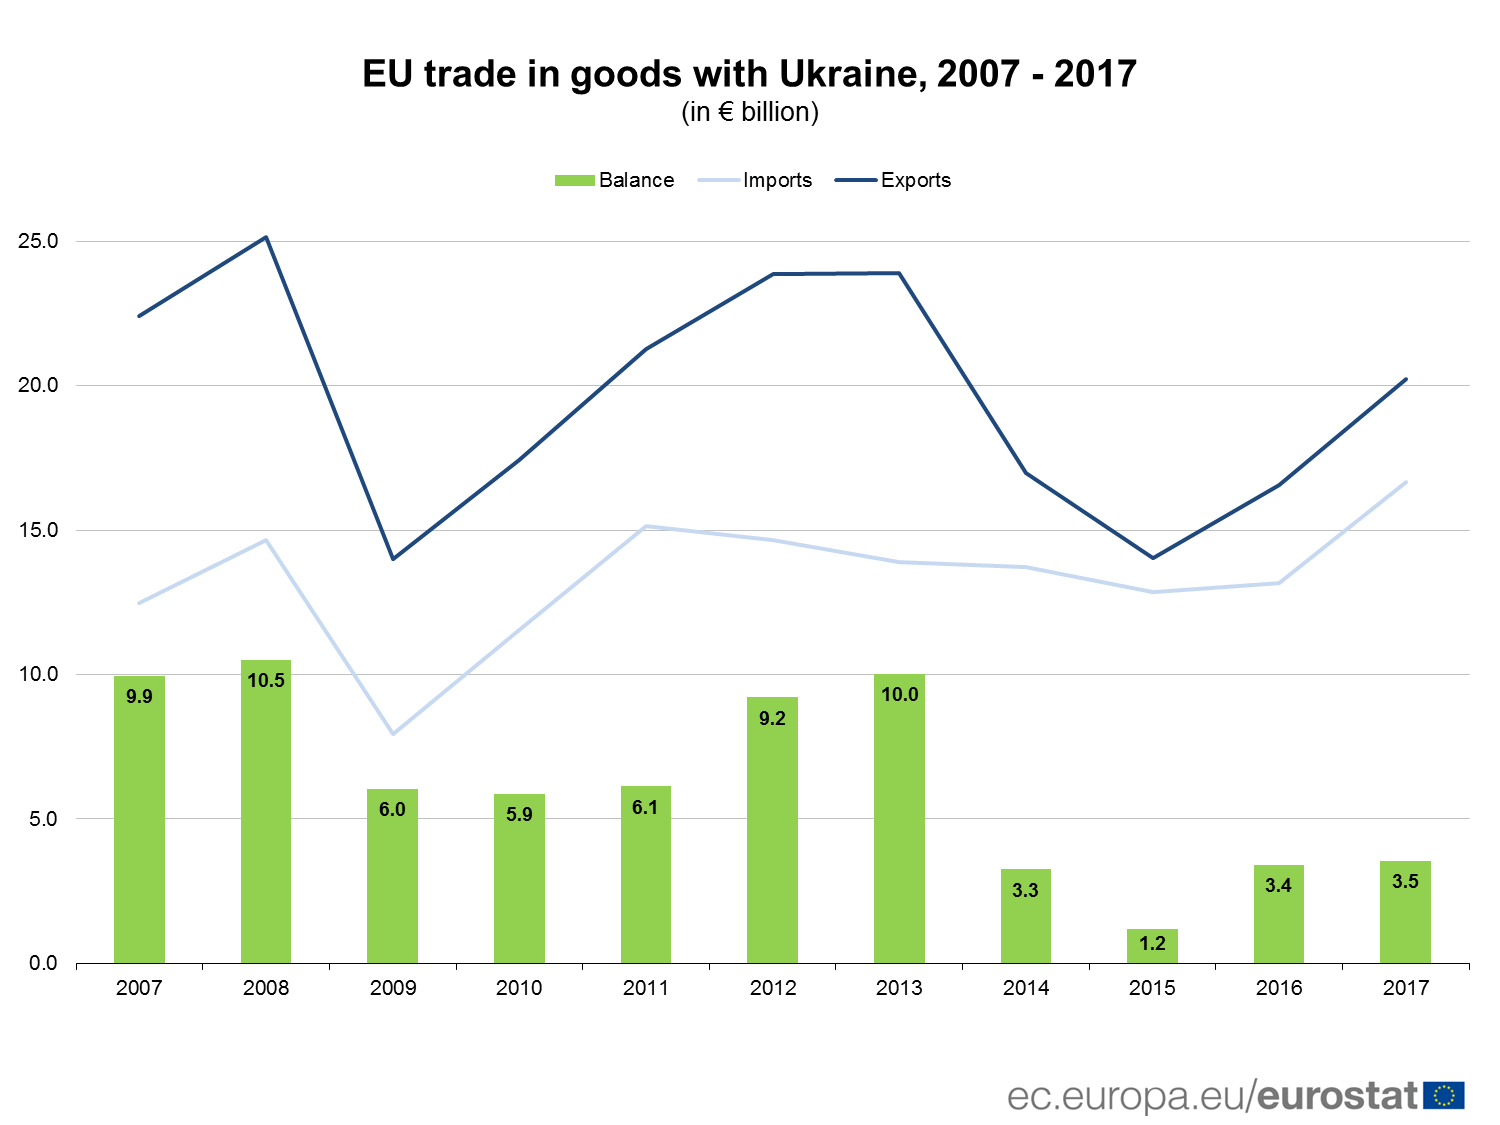 EU trade in goods with Ukraine, 2007 - 2017